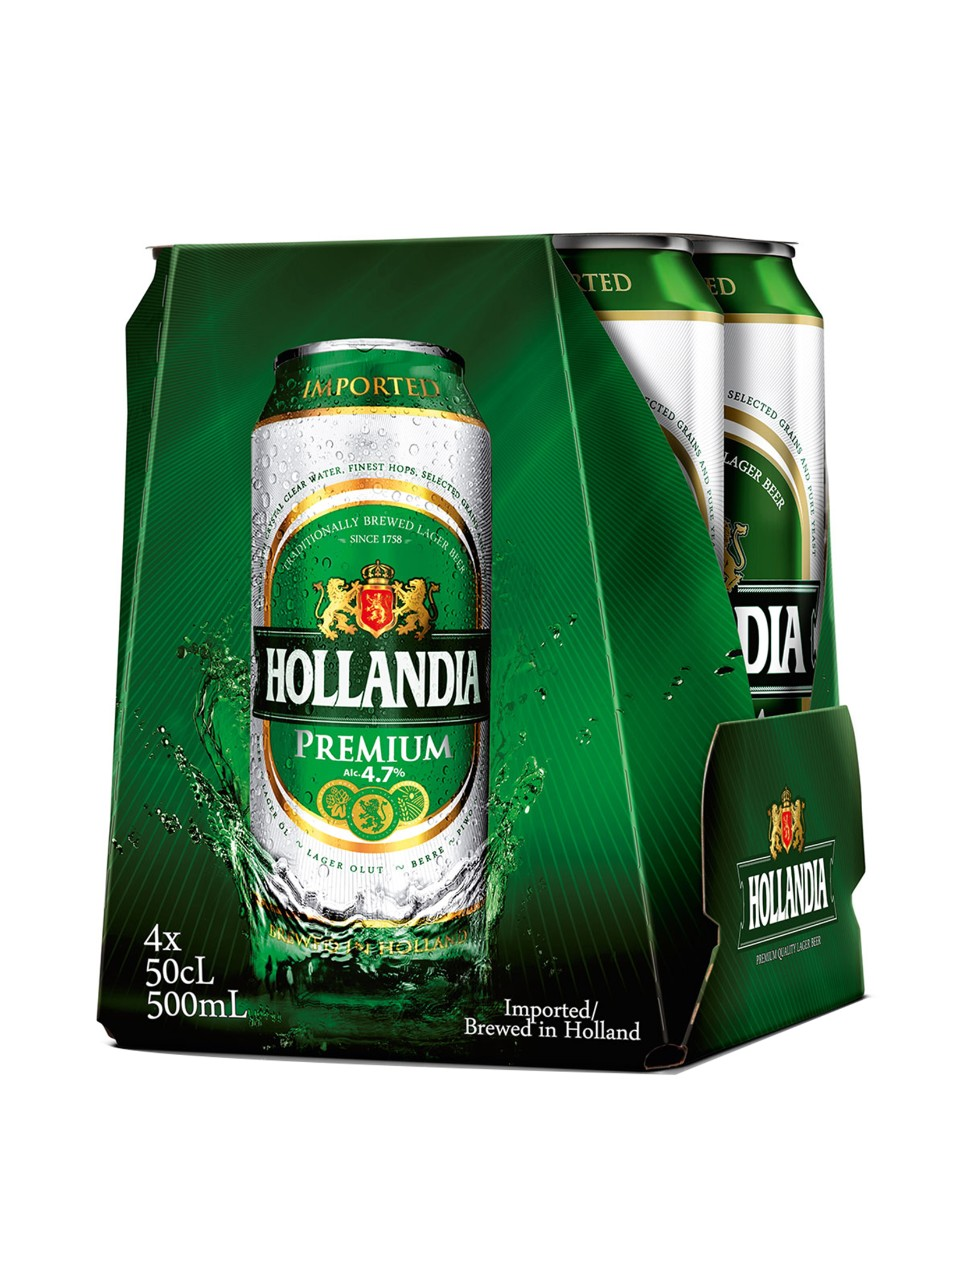 Hollandia Lager from LCBO